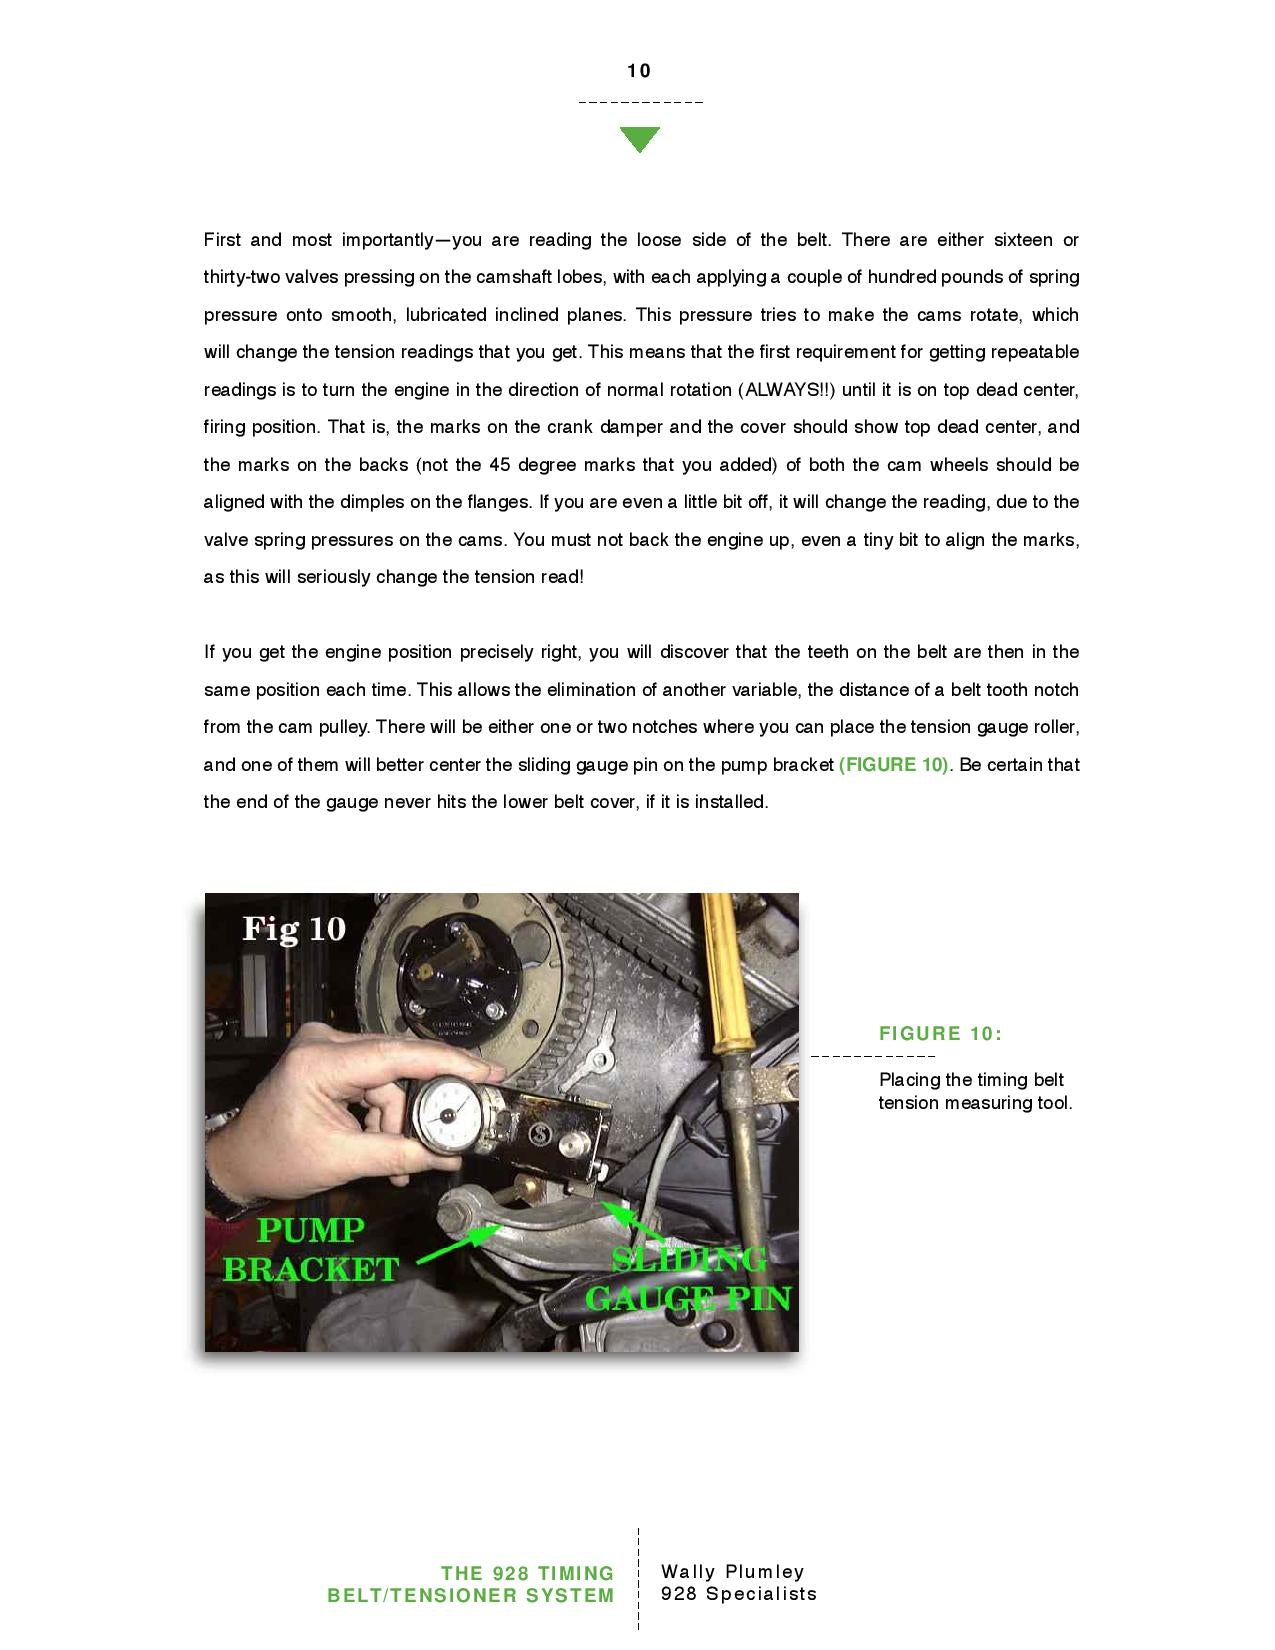 The 928 Timing Belt and Tensioner System pg10